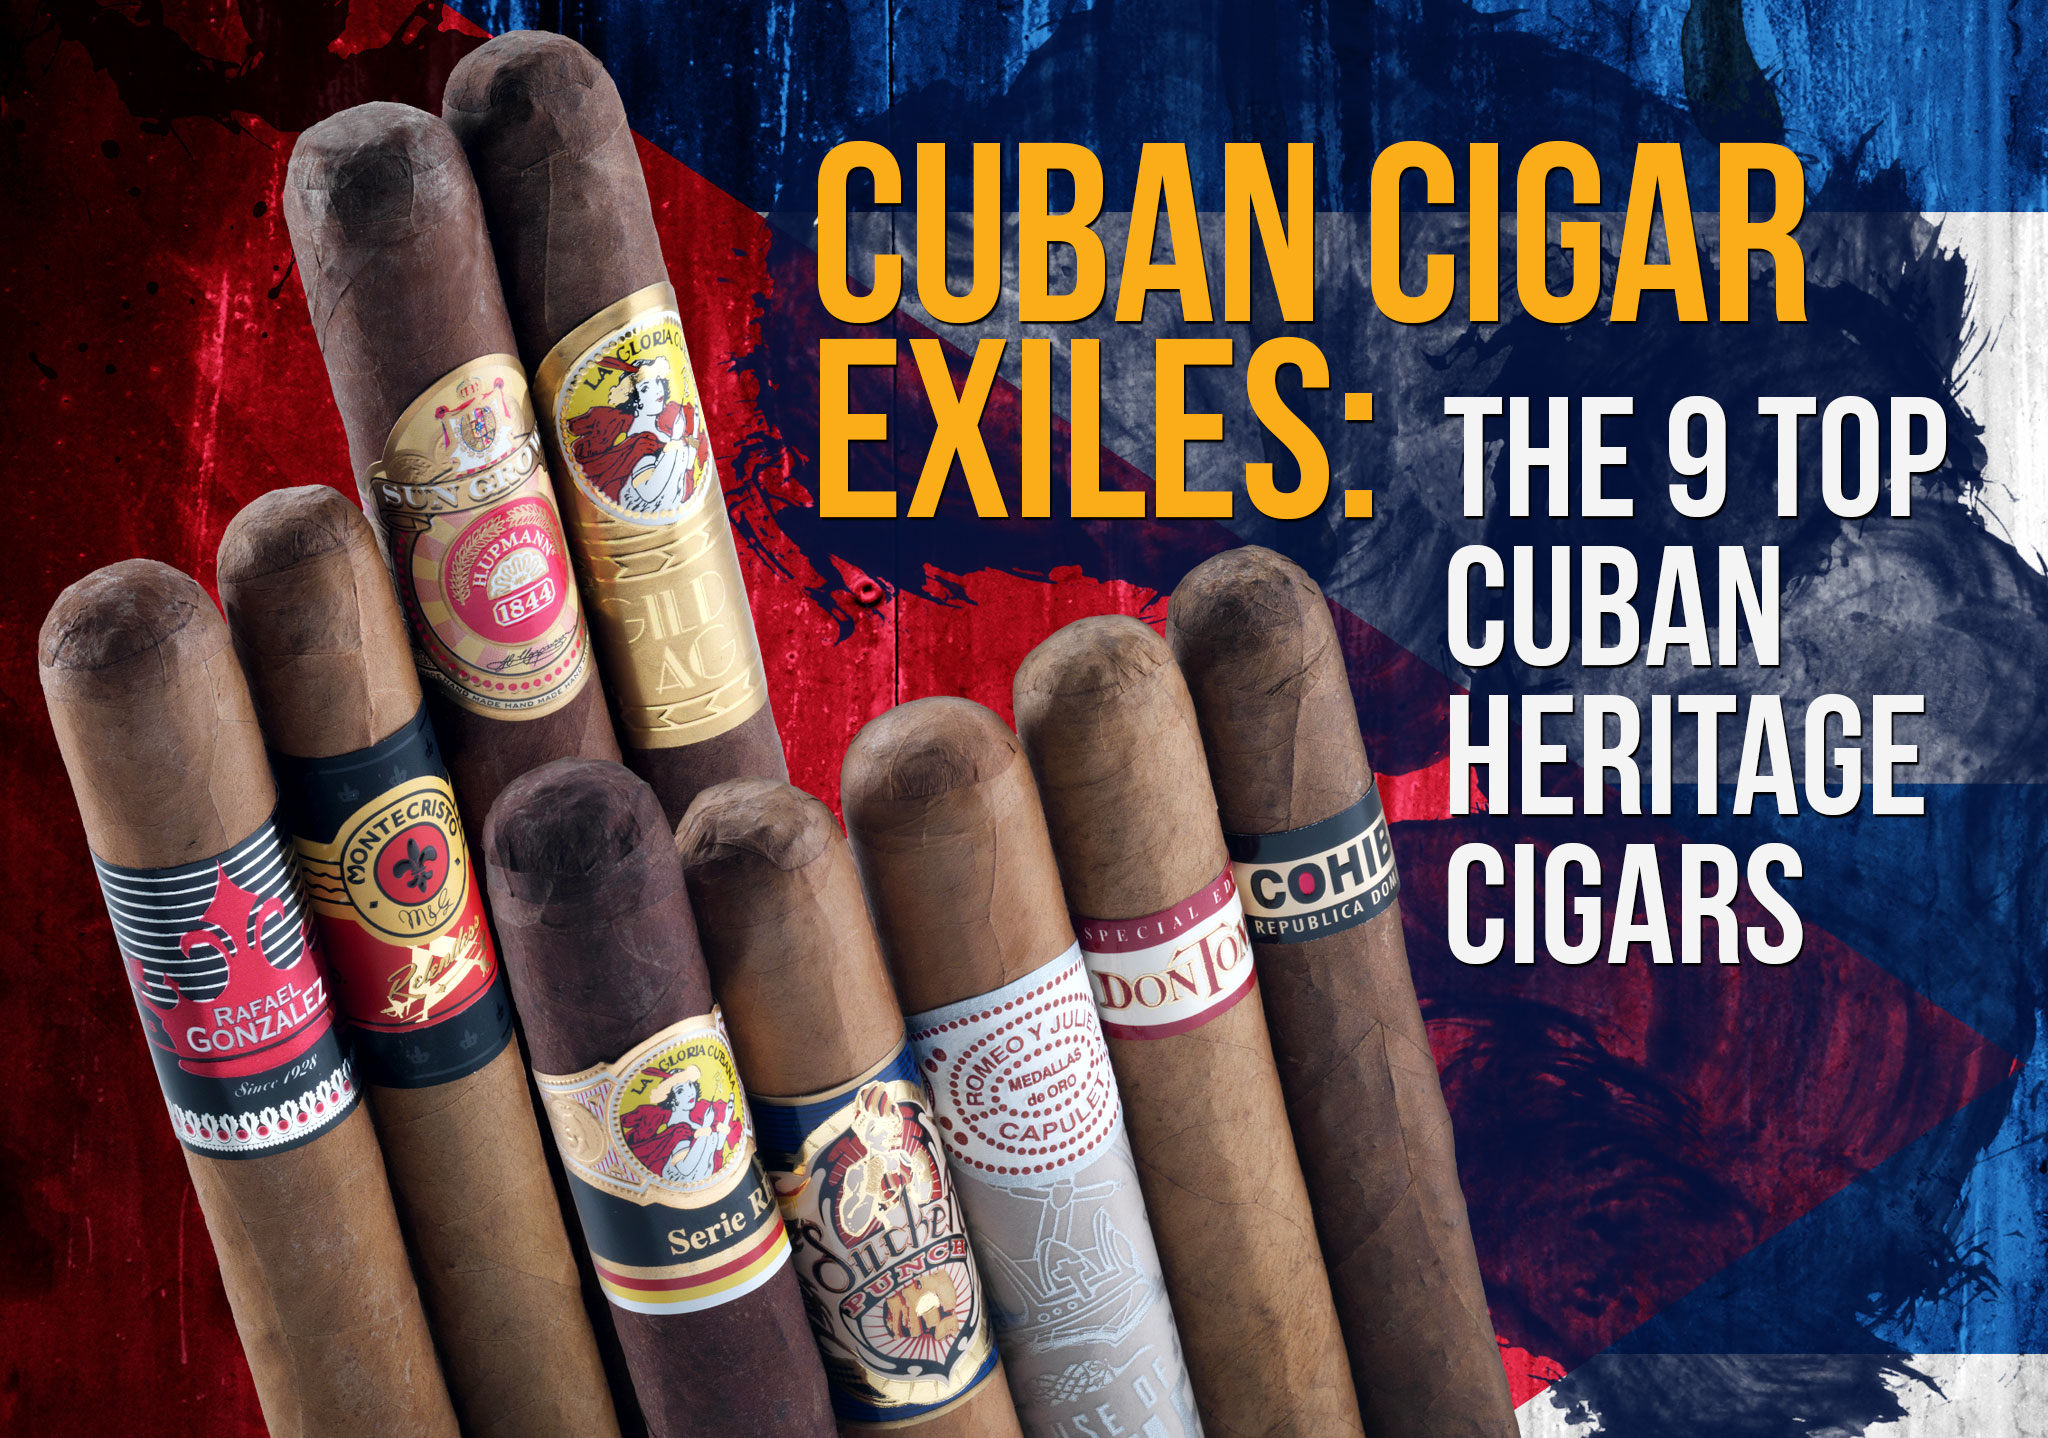 Cuban Cigar Exiles: the 9 Top Cuban Heritage Cigars